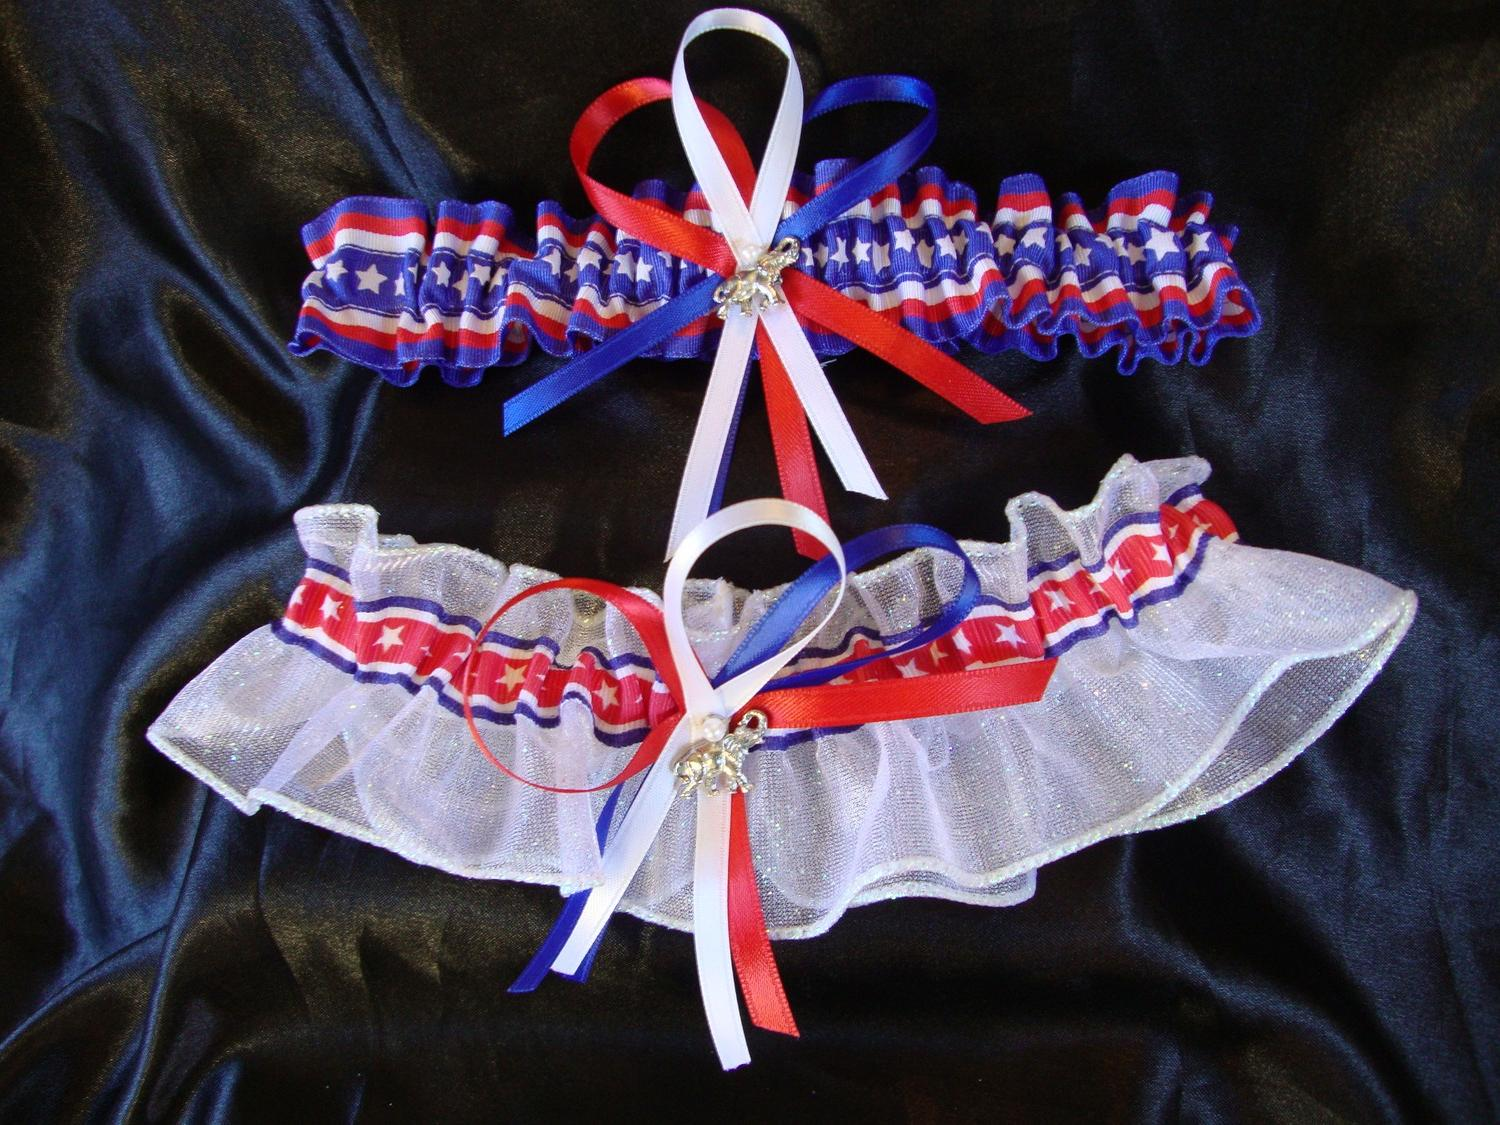 Red White and Blue Wedding Garter Set with Elephant Charms